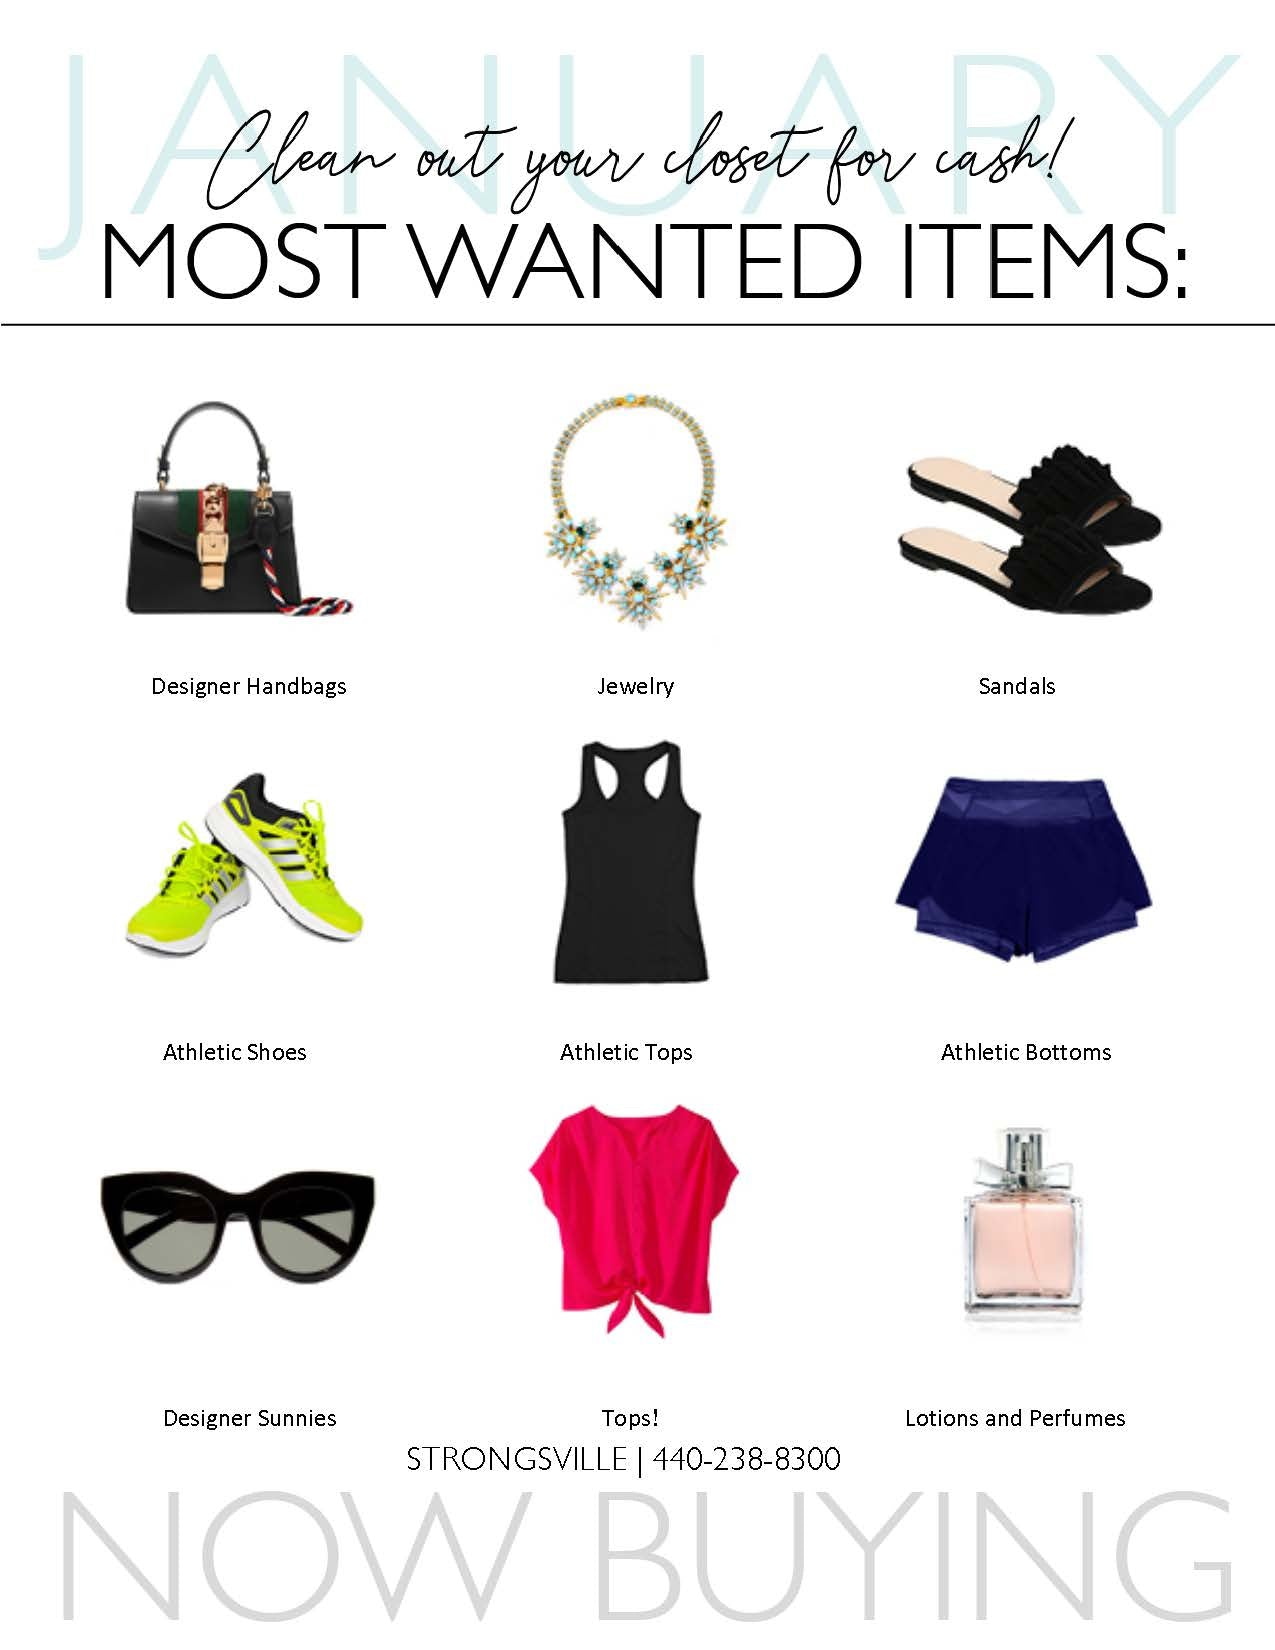 Clothes Mentor Strongsville January most wanted